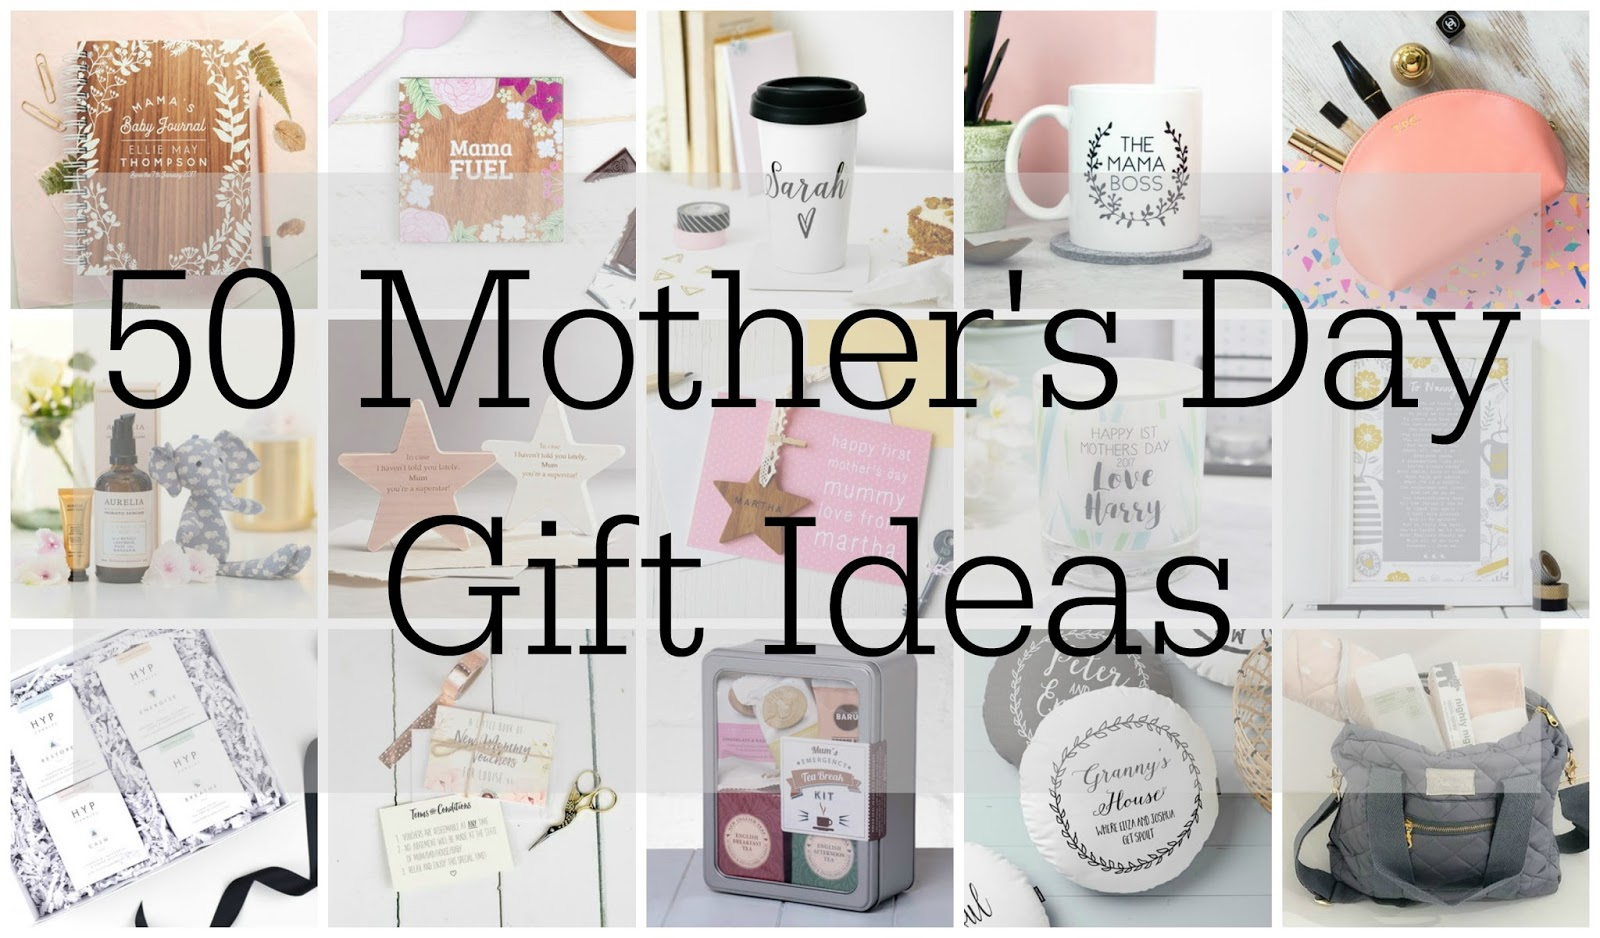 50 Mother's Day Gift Ideas  Tattooed Tealady. List Of Baby Items Needed Template. The Best Resume Objective Statement Template. Free Halloween Invitations Template. Resume For Writers Samples Template. Lower Case Flash Cards Template. List Of Hobbies In Resumes Template. Medical School Cover Letter Template. Free Commercial Cleaning Contract Templates Jlgaq